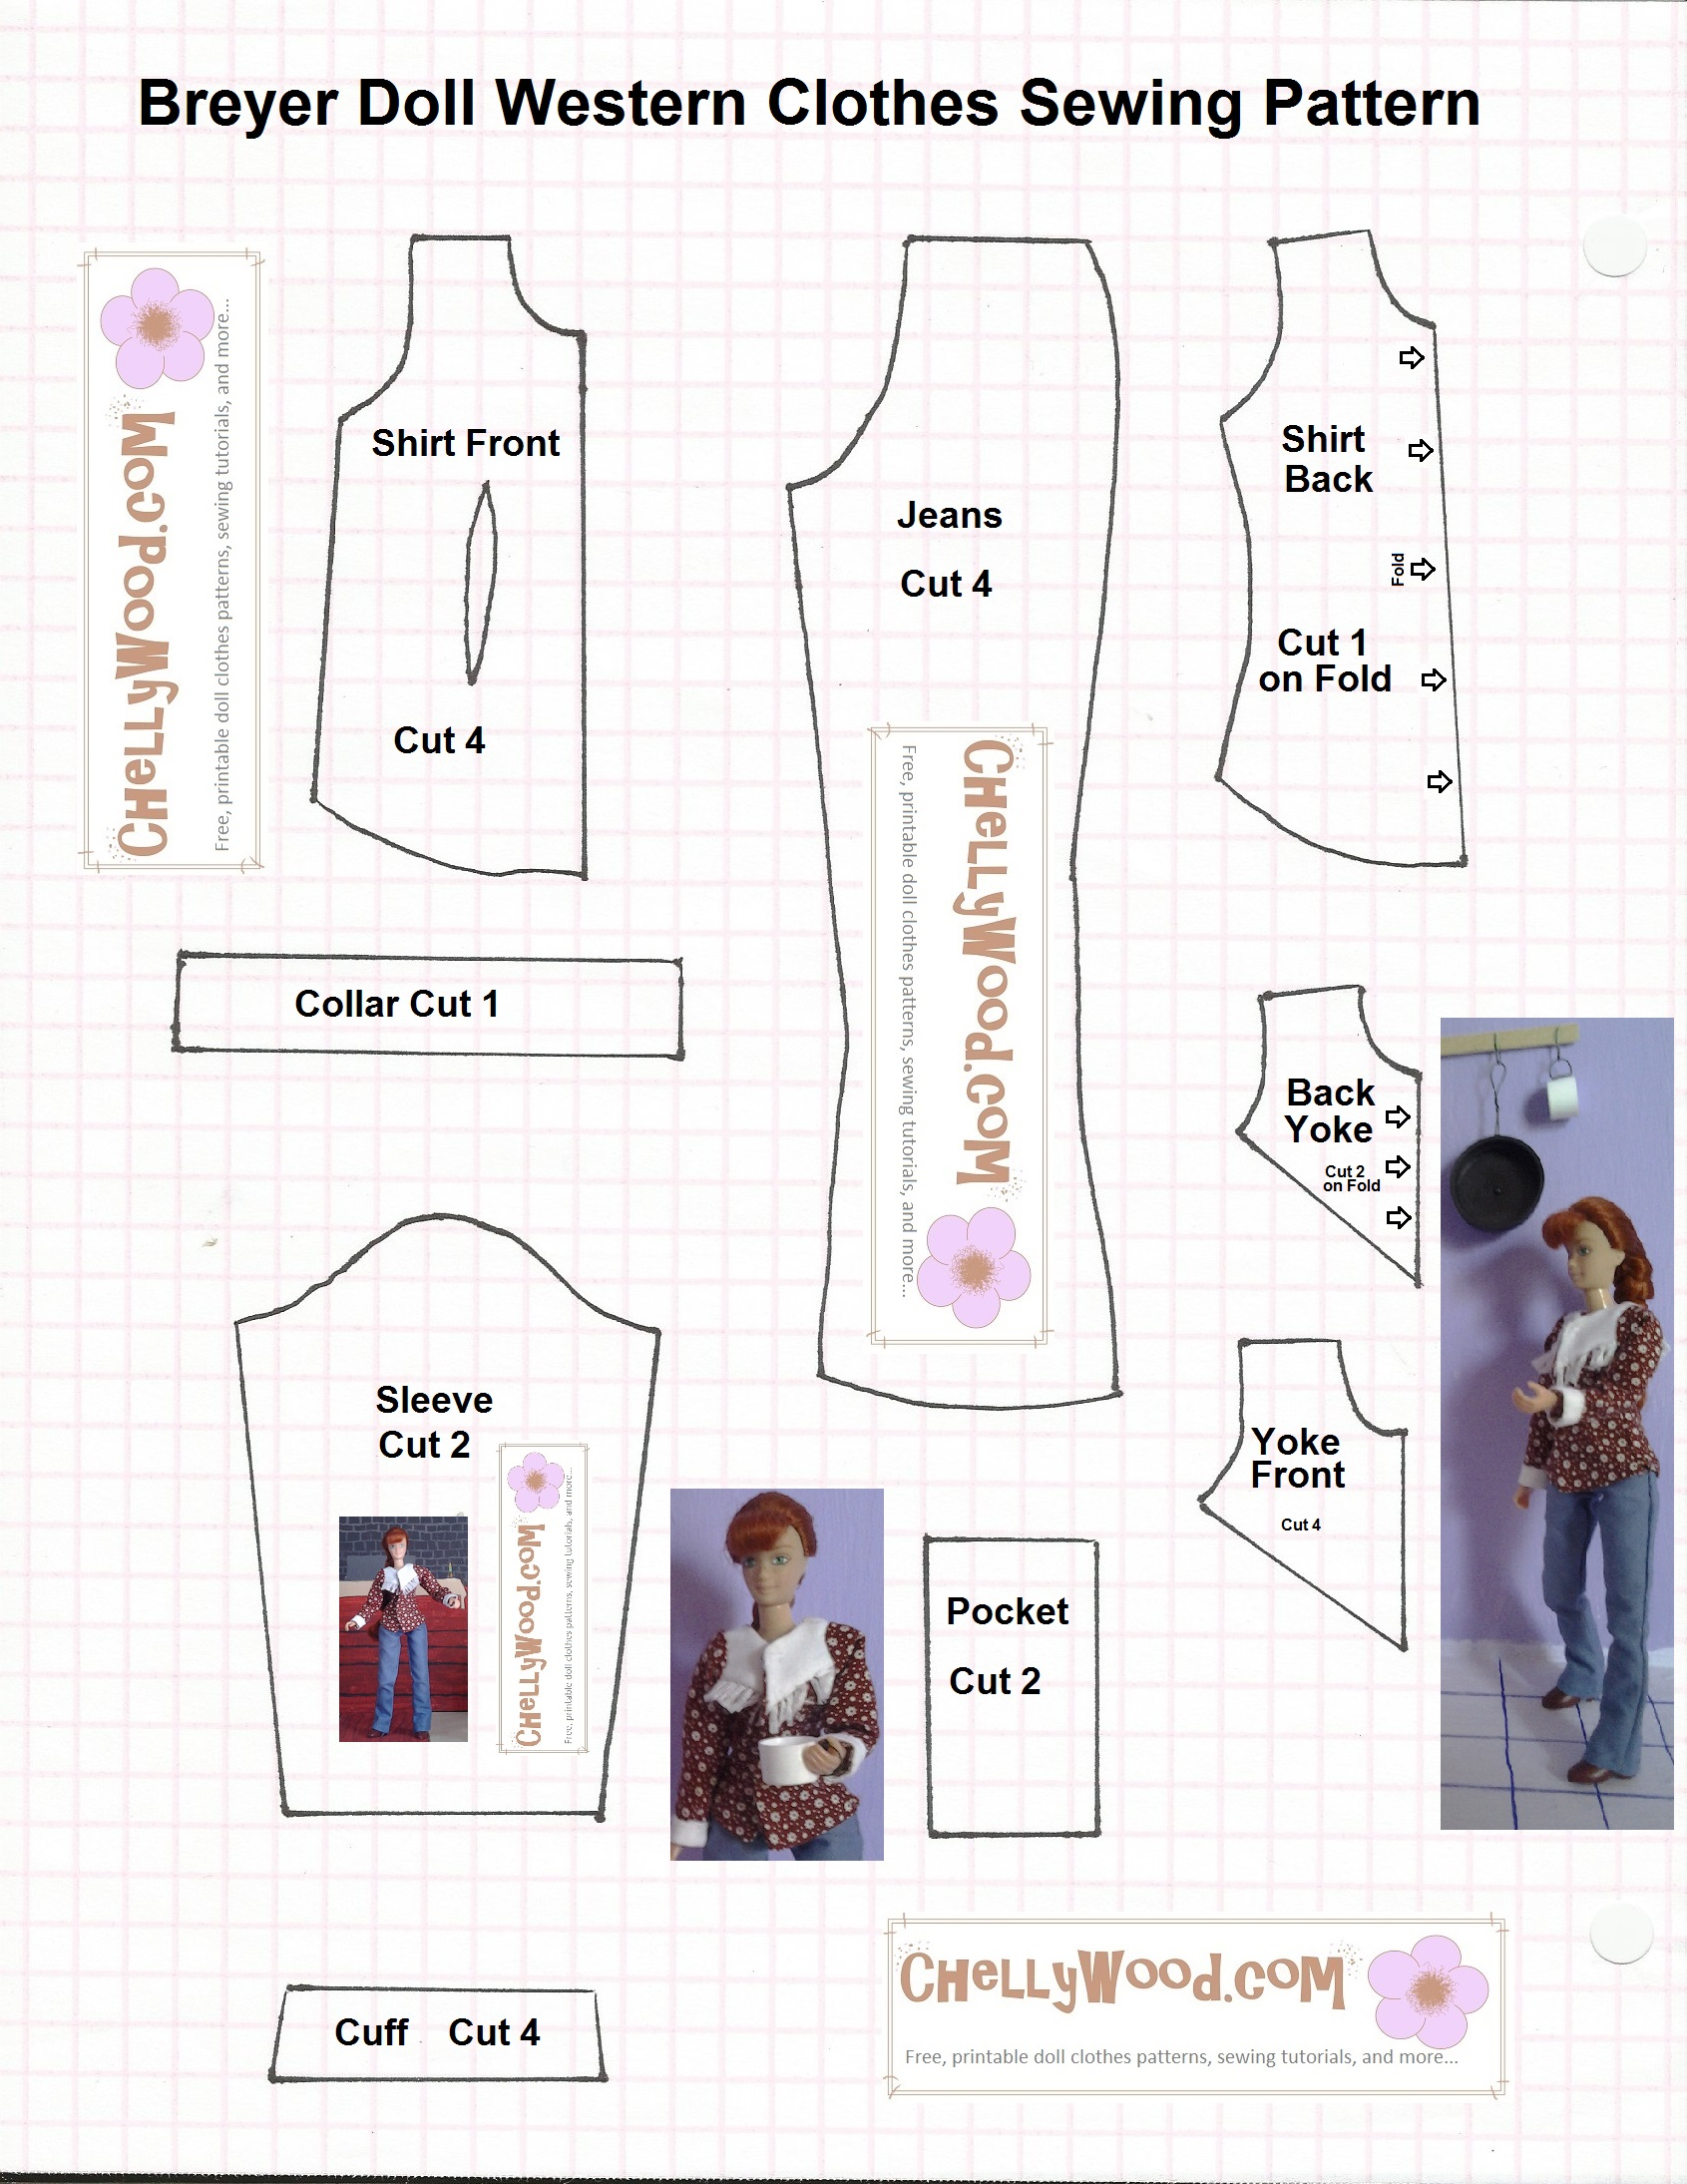 graphic relating to Free Printable Doll Clothes Patterns named Breyer Doll Garments #Sewing Habit, Absolutely free and Printable for